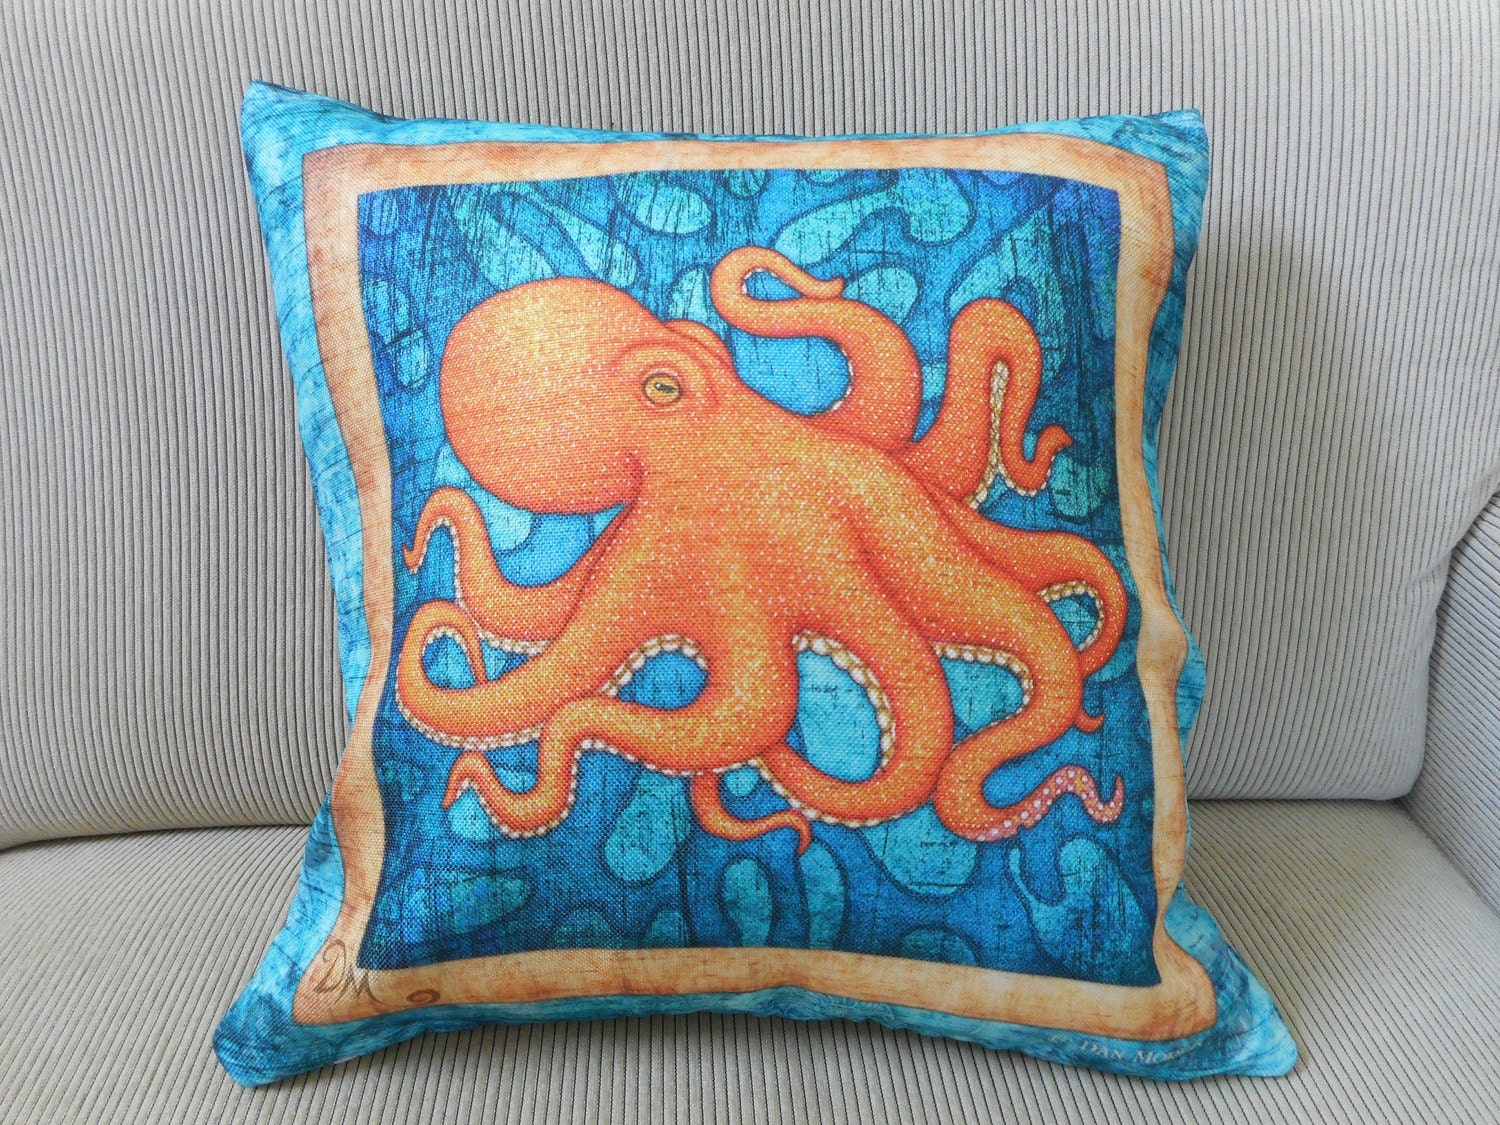 Octopus Accent Pillow Cover Decorative Pillow Octopus